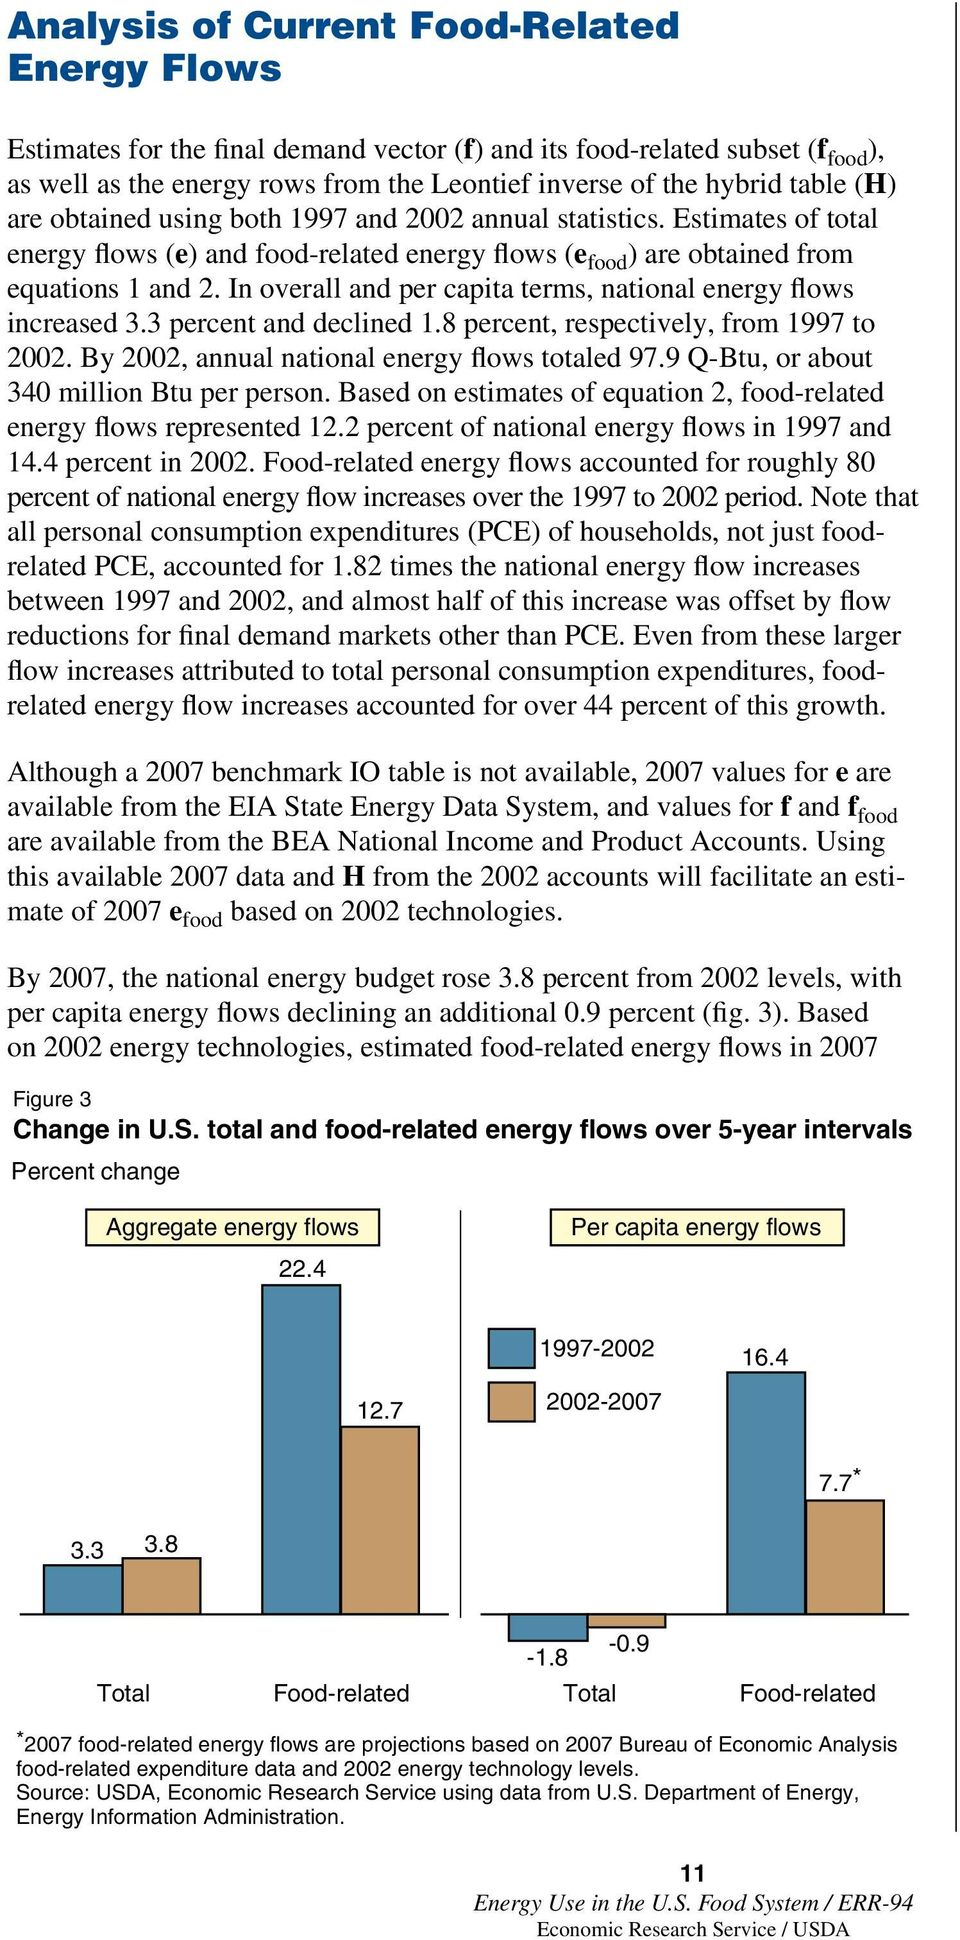 In overall and per capita terms, national energy flows increased 3.3 percent and declined 1.8 percent, respectively, from 1997 to 2002. By 2002, annual national energy flows totaled 97.